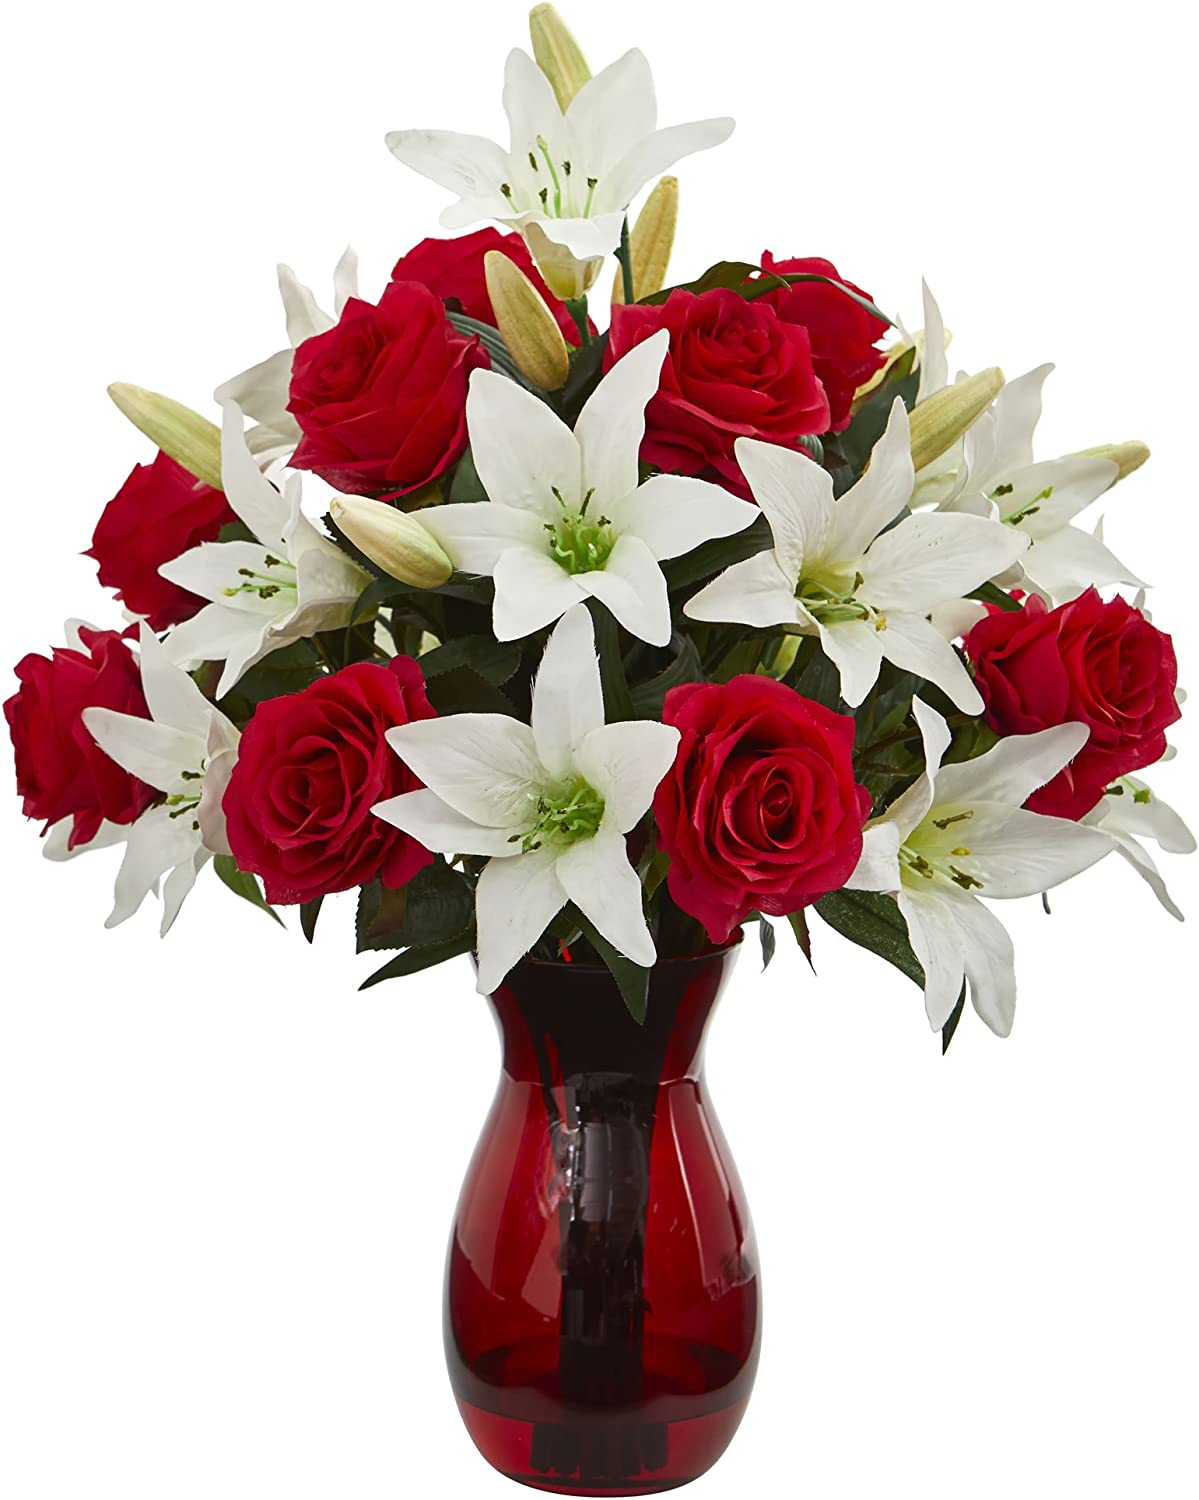 Nearly Natural Roses Lilies Artificial Silk Popular Jacksonville Mall brand in the world Arrangeme Vase Red